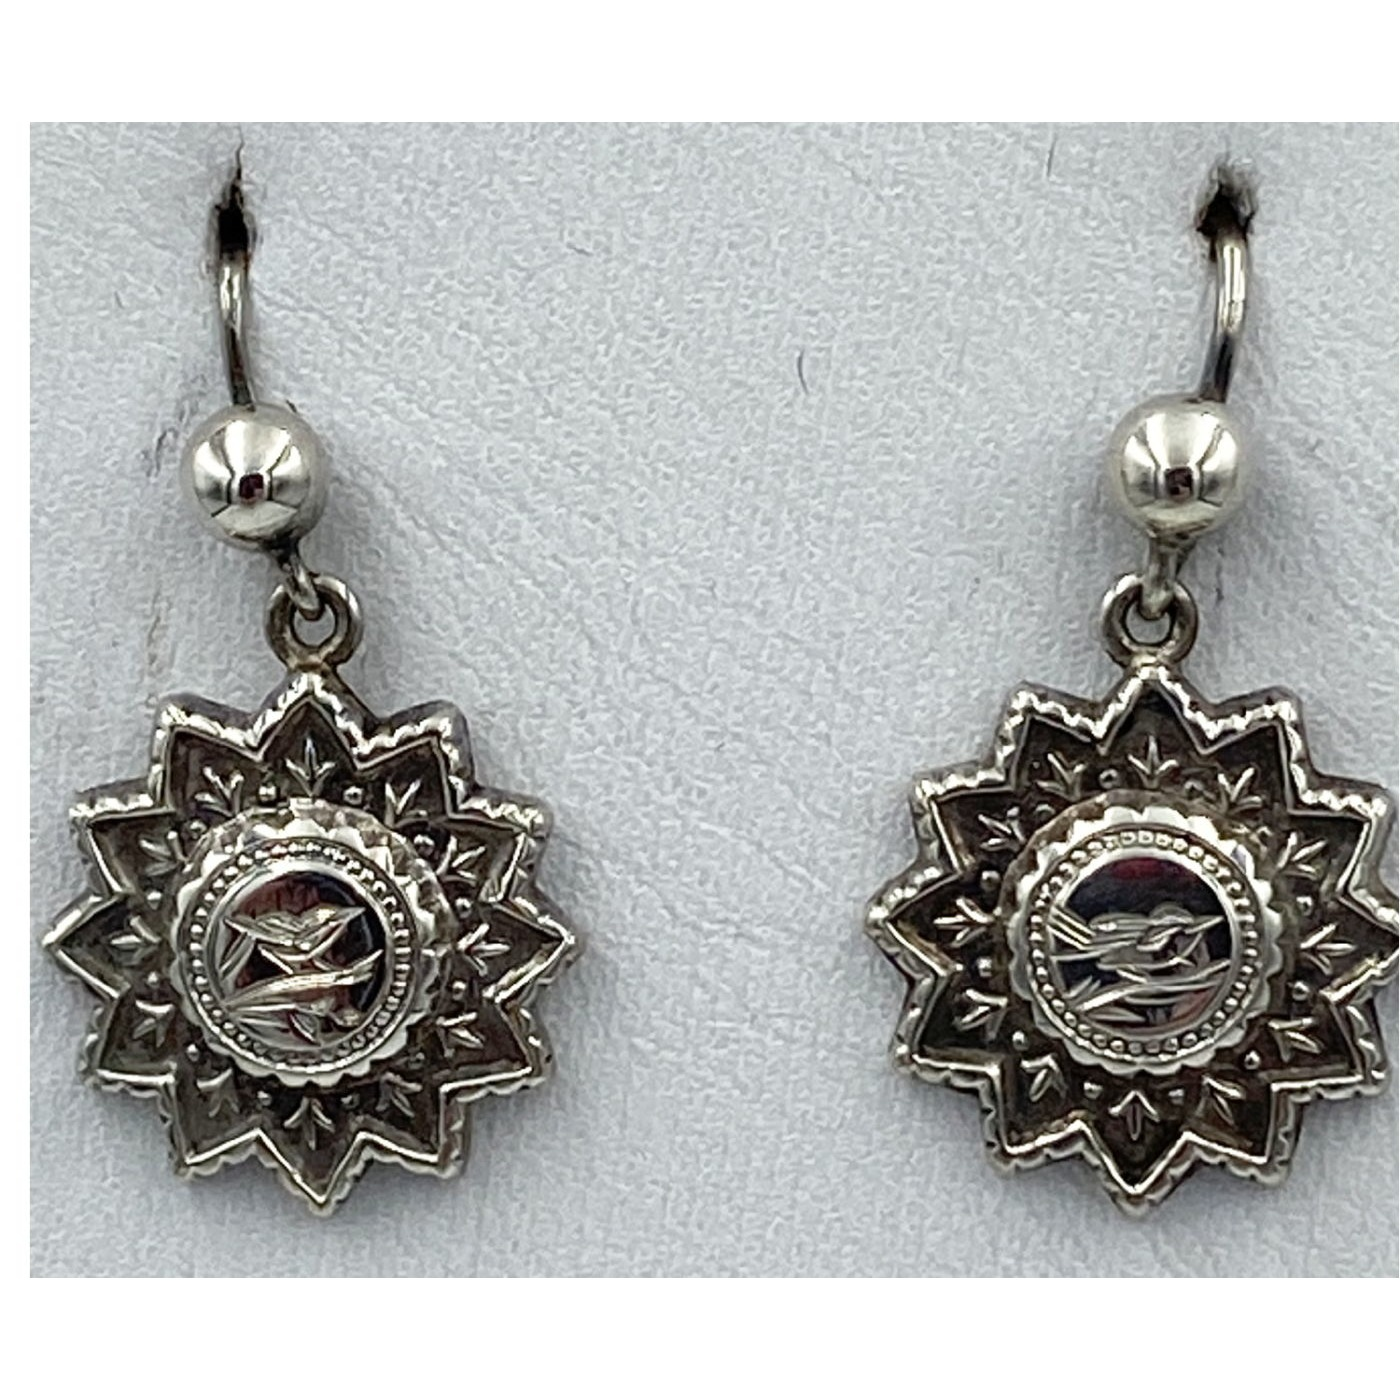 Stunning Star-shaped Sterling Silver English Victorian Earrings - Birds - Swallows